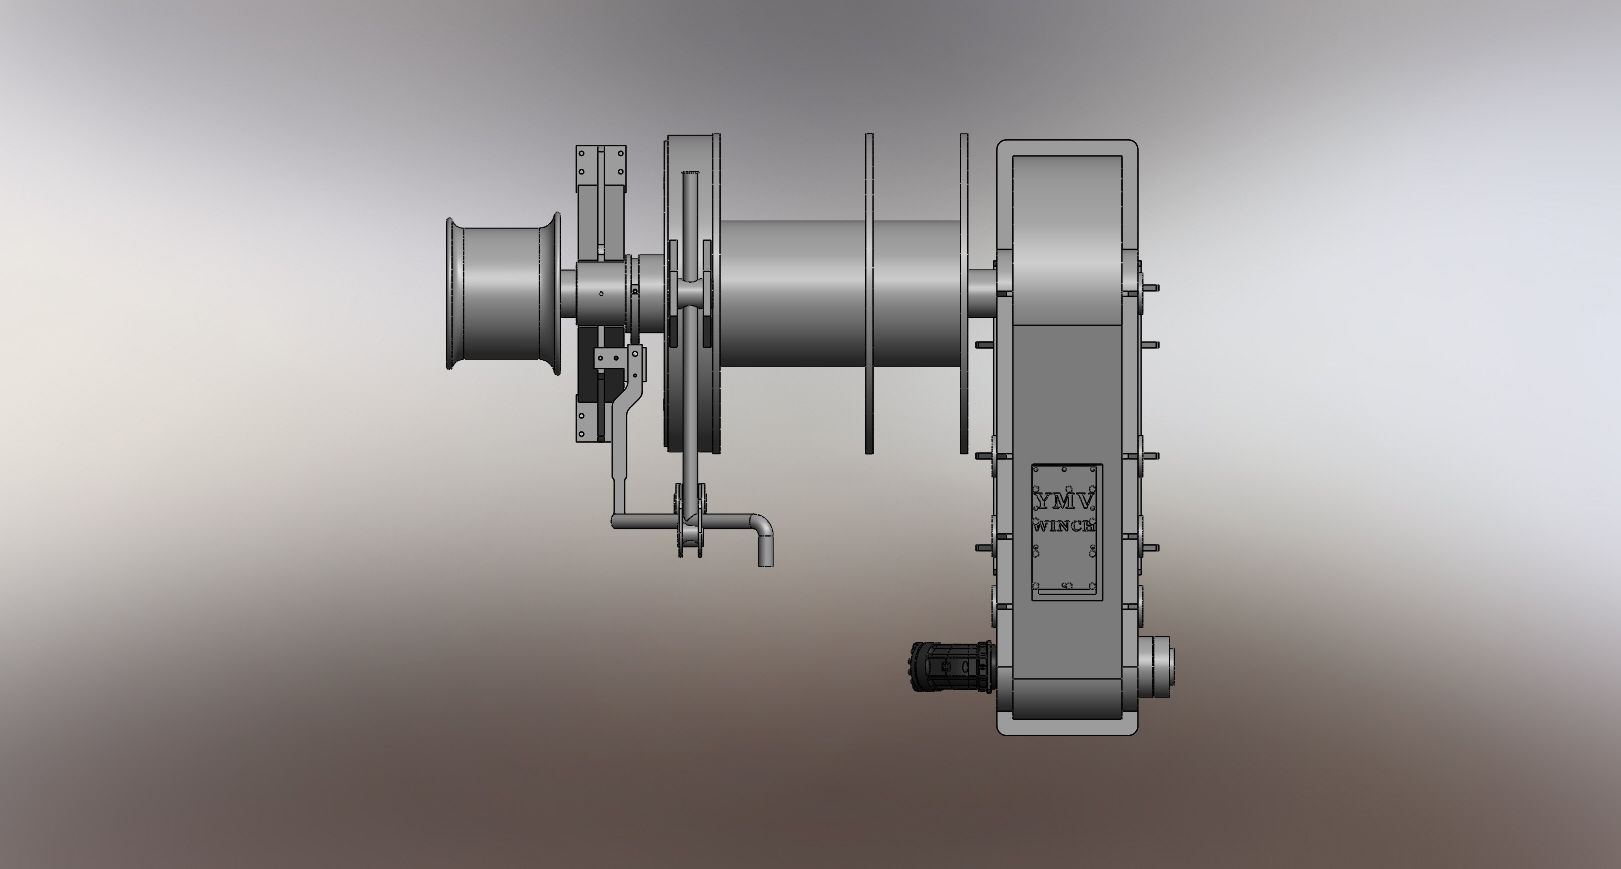 hight resolution of mooring winch for ships hydraulic drive electric drive